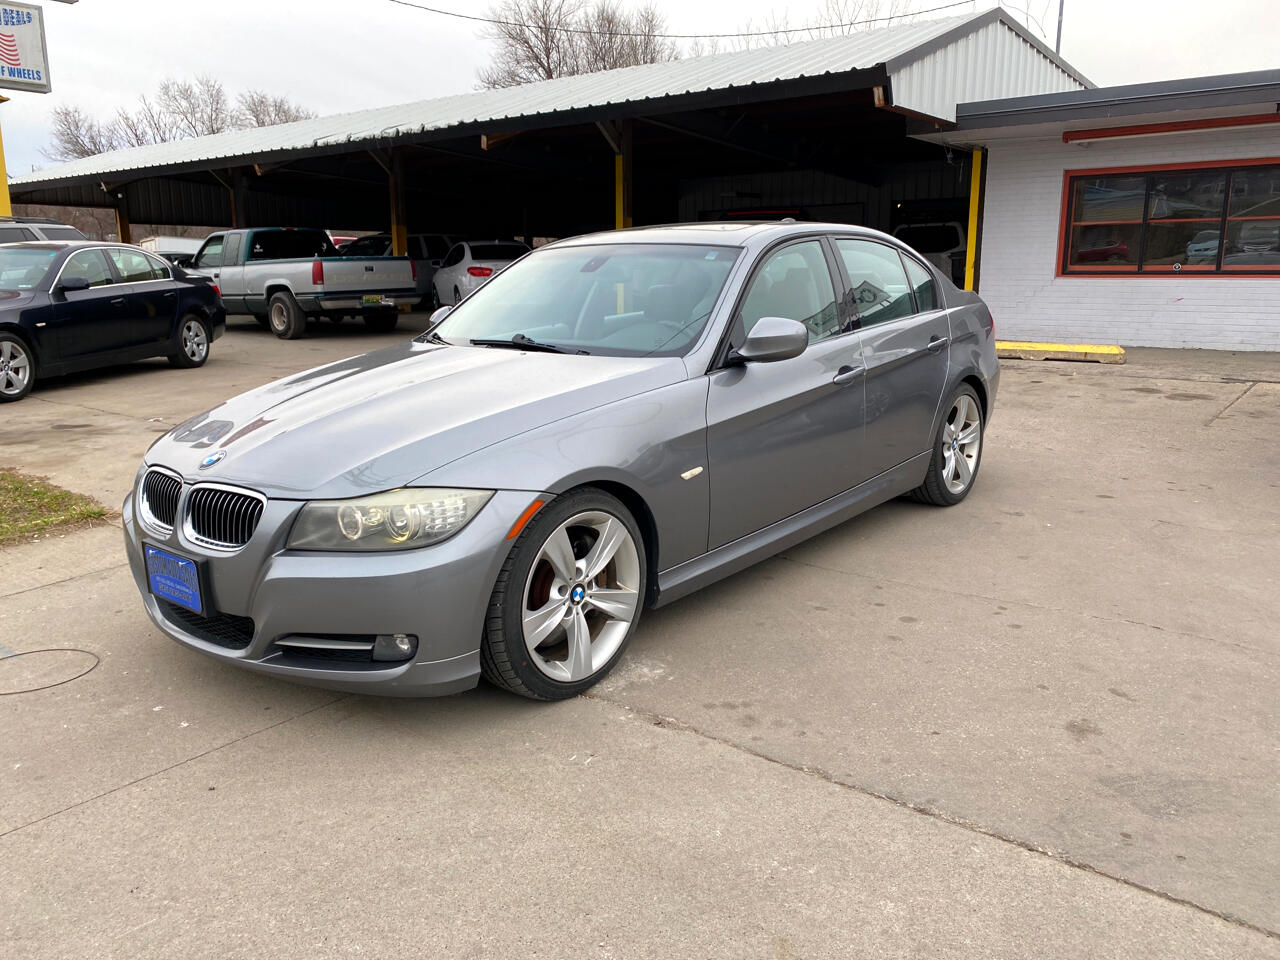 BMW 3 Series 4dr Sdn 335i RWD South Africa 2009